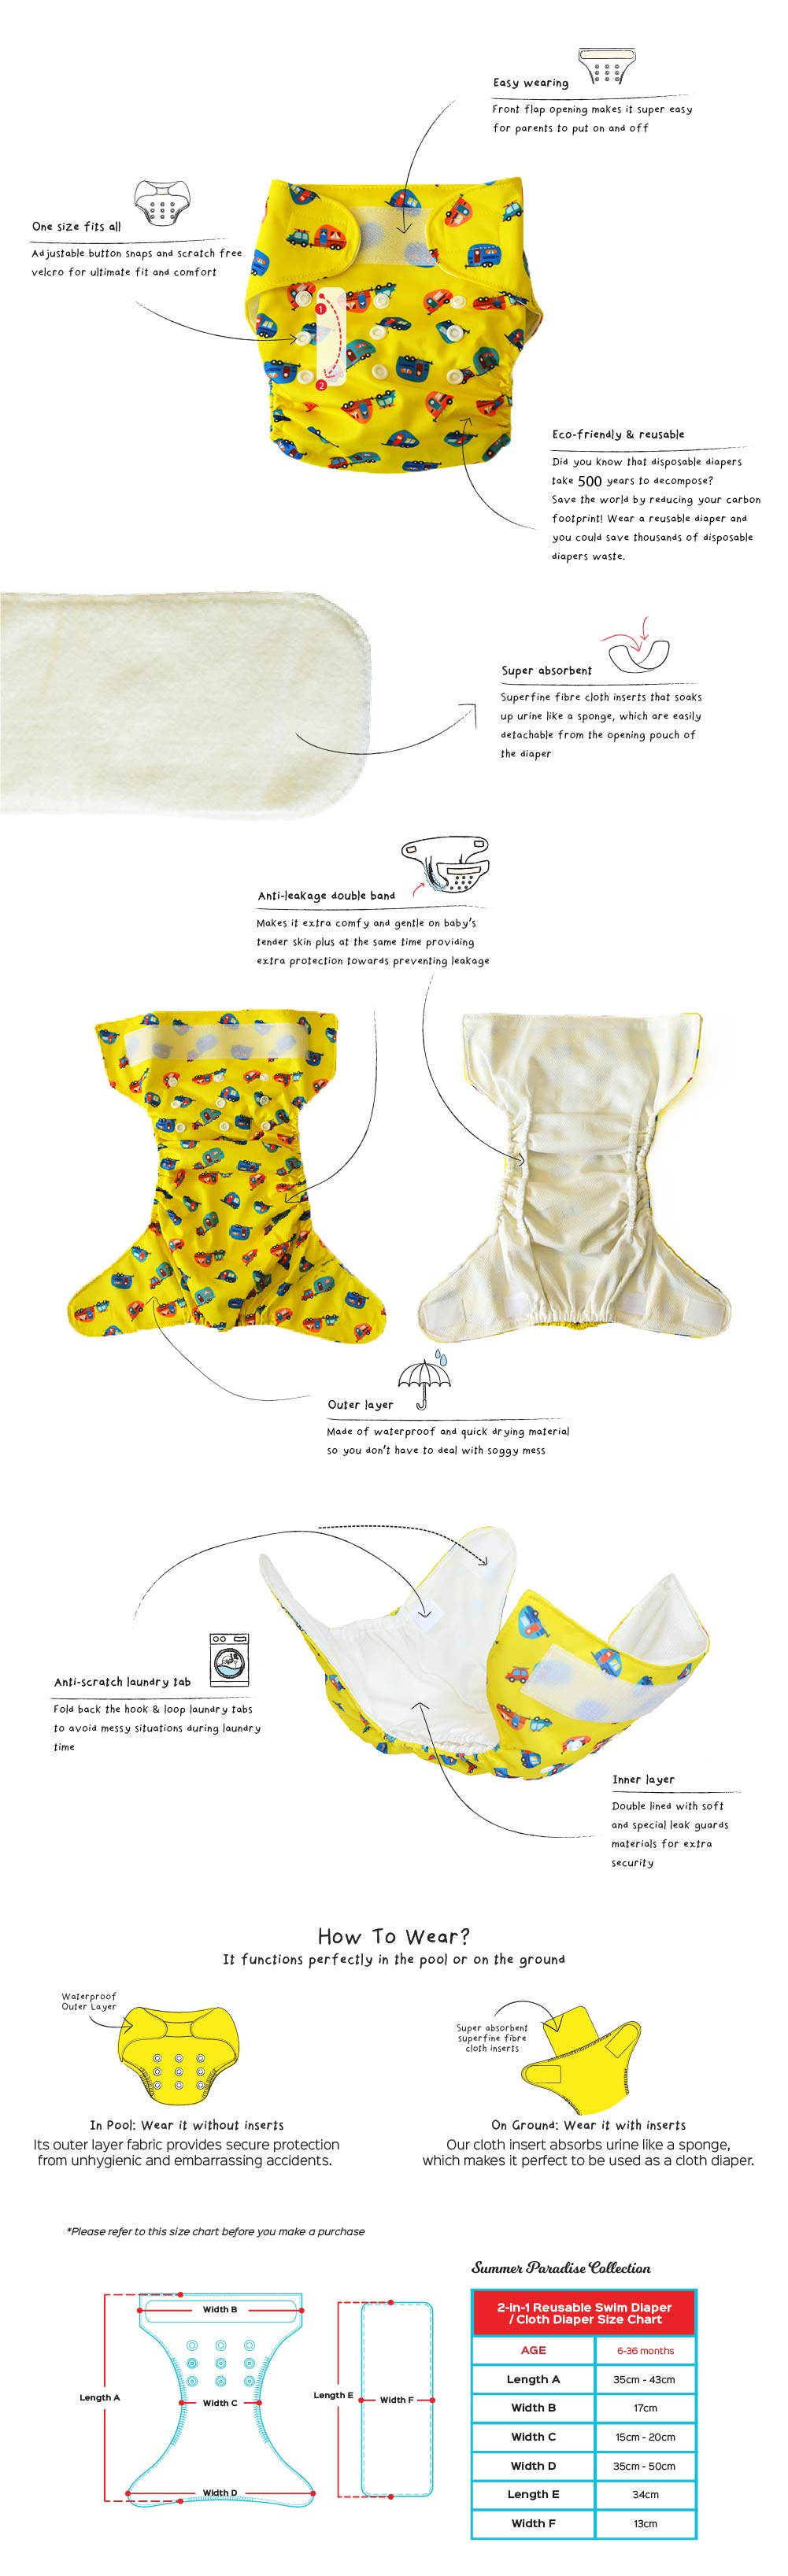 'Cheekaaboo 2-in-1 Reusable Swim Diaper / Cloth Diaper - Surfer (6-36 months) - Summer Paradise'